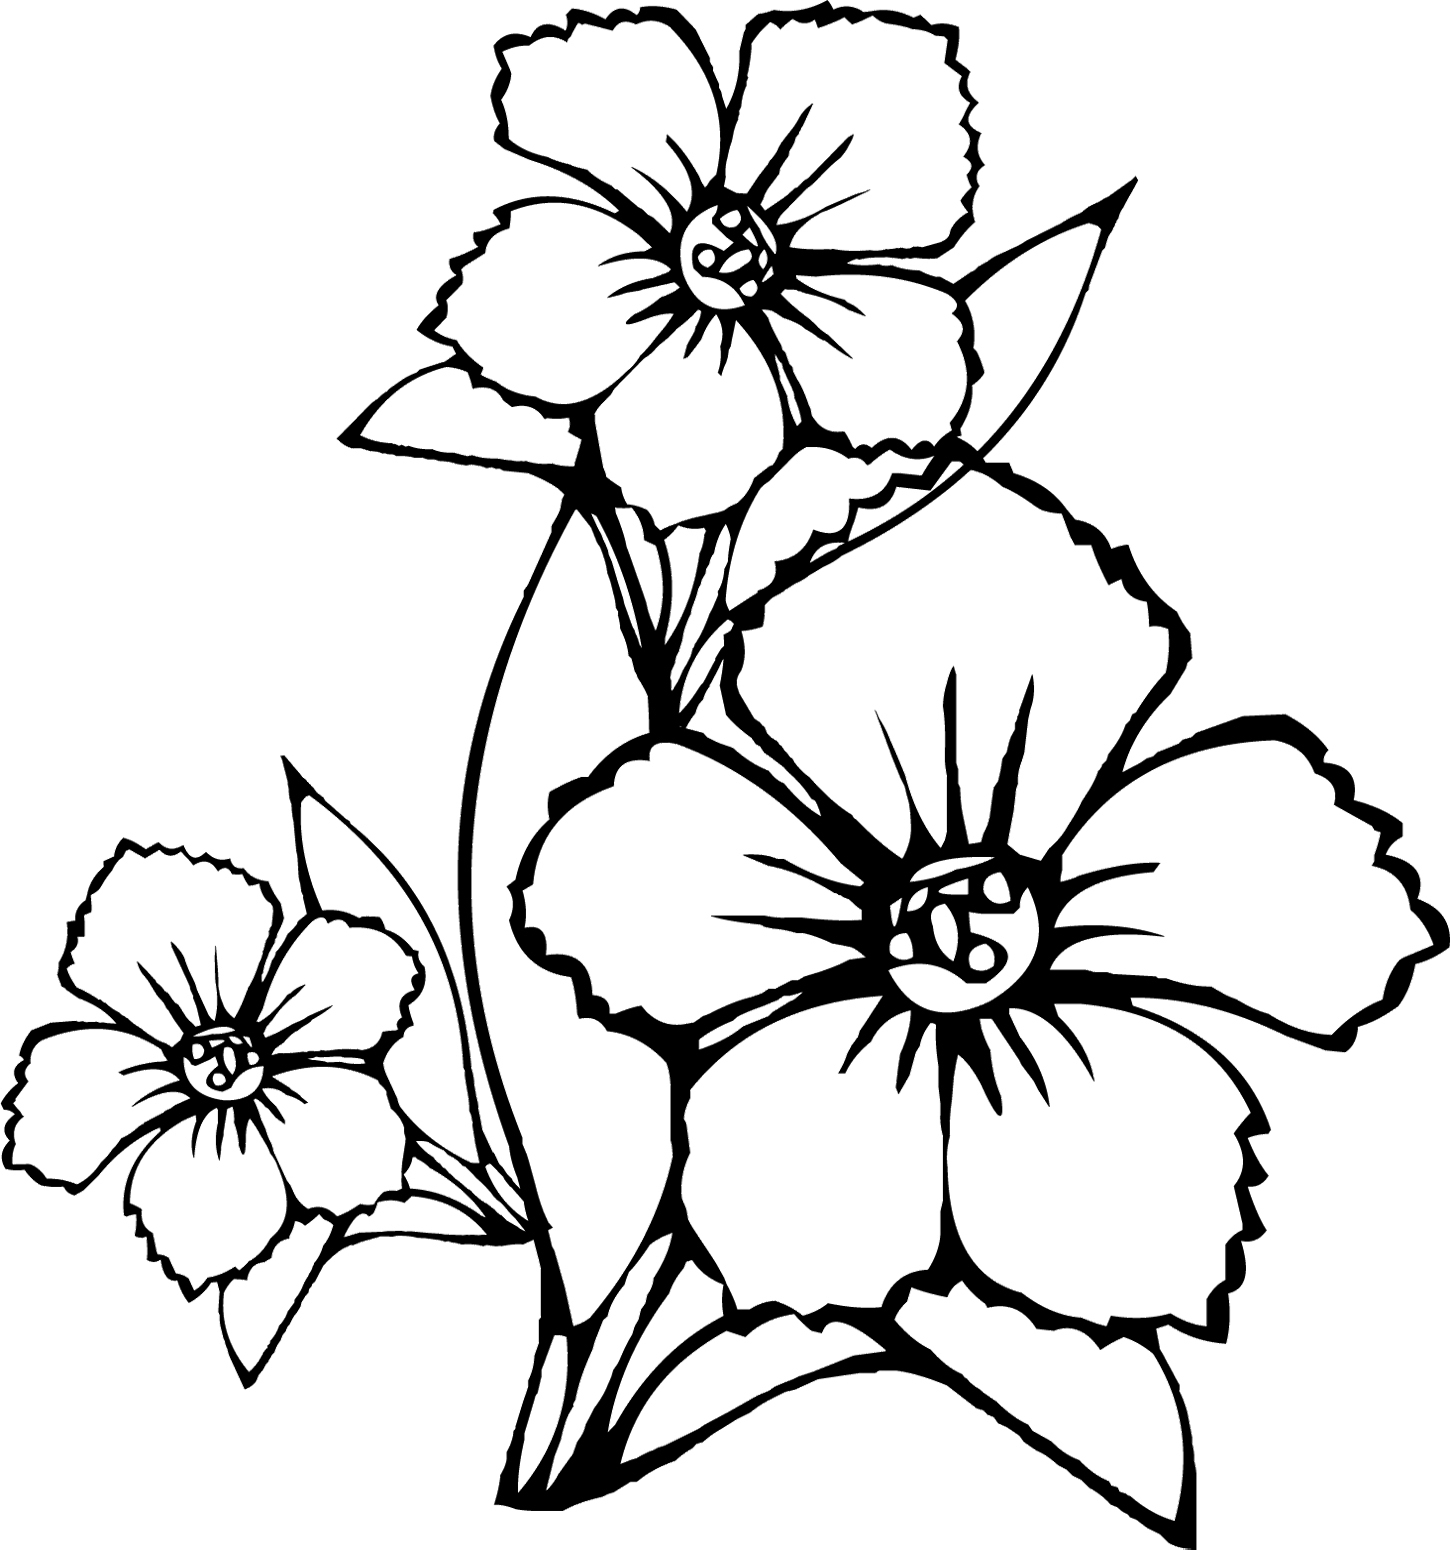 Simple flower drawing at getdrawings free for personal use 1450x1550 beautiful new simple flower drawing how to draw beautiful flowers mightylinksfo